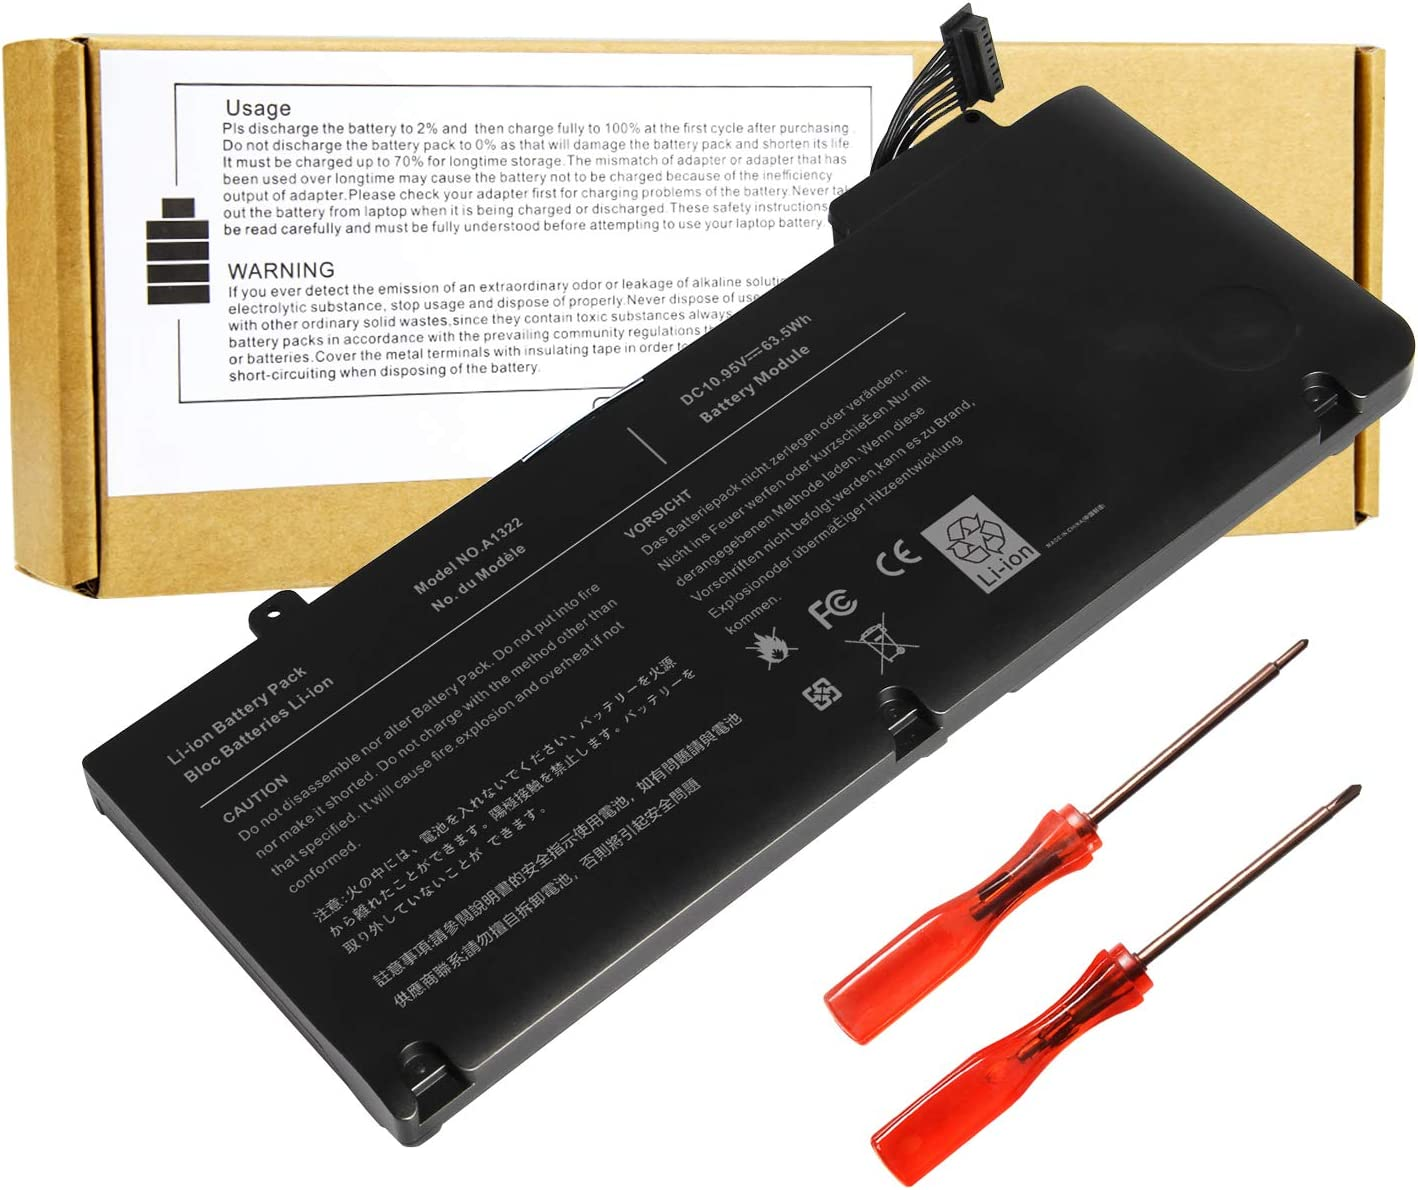 Laptop Battery Replace for Apple MacBook Pro 13 inch A1278 A1322 Mid 2009 2010 Early 2011 2012